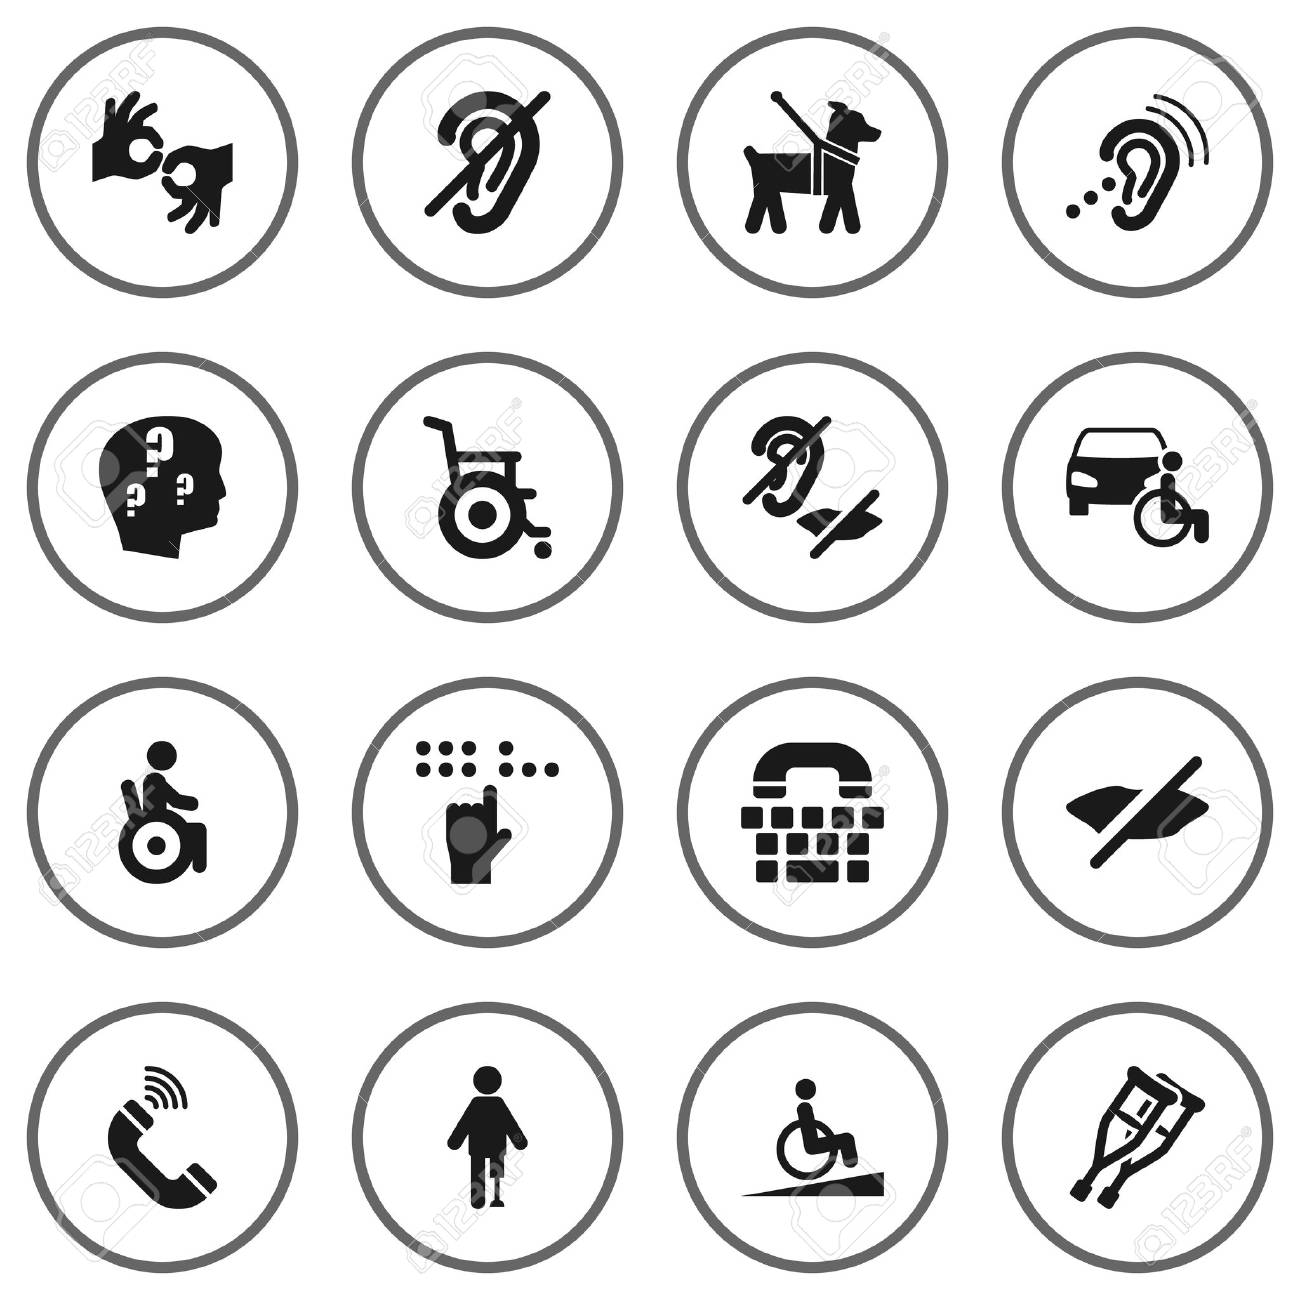 Set of 16 accessibility icons setllection of universal access collection of universal access pet tty and buycottarizona Gallery